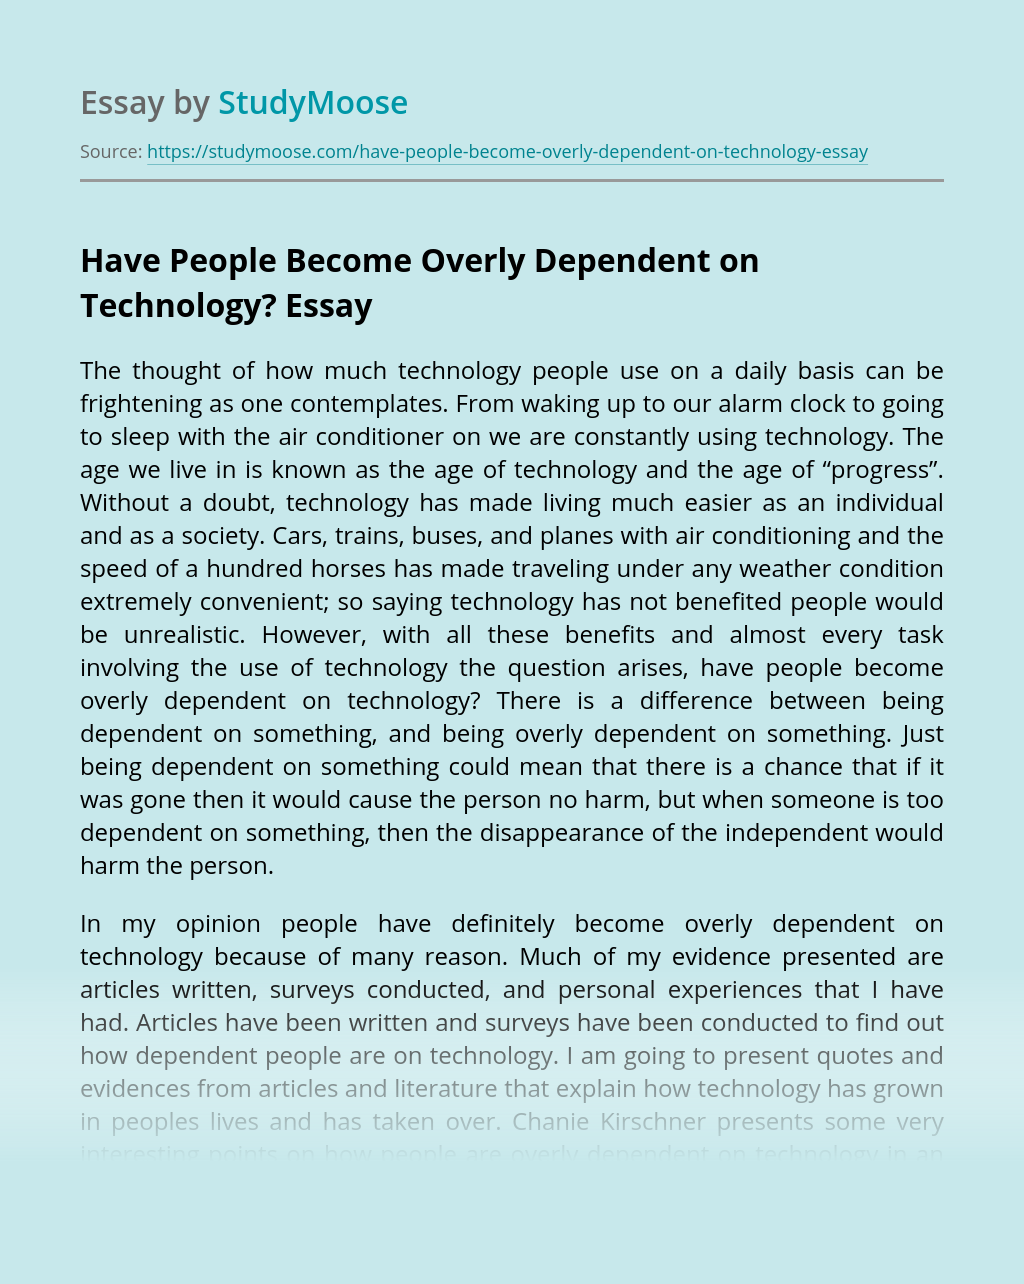 Have People Become Overly Dependent on Technology?